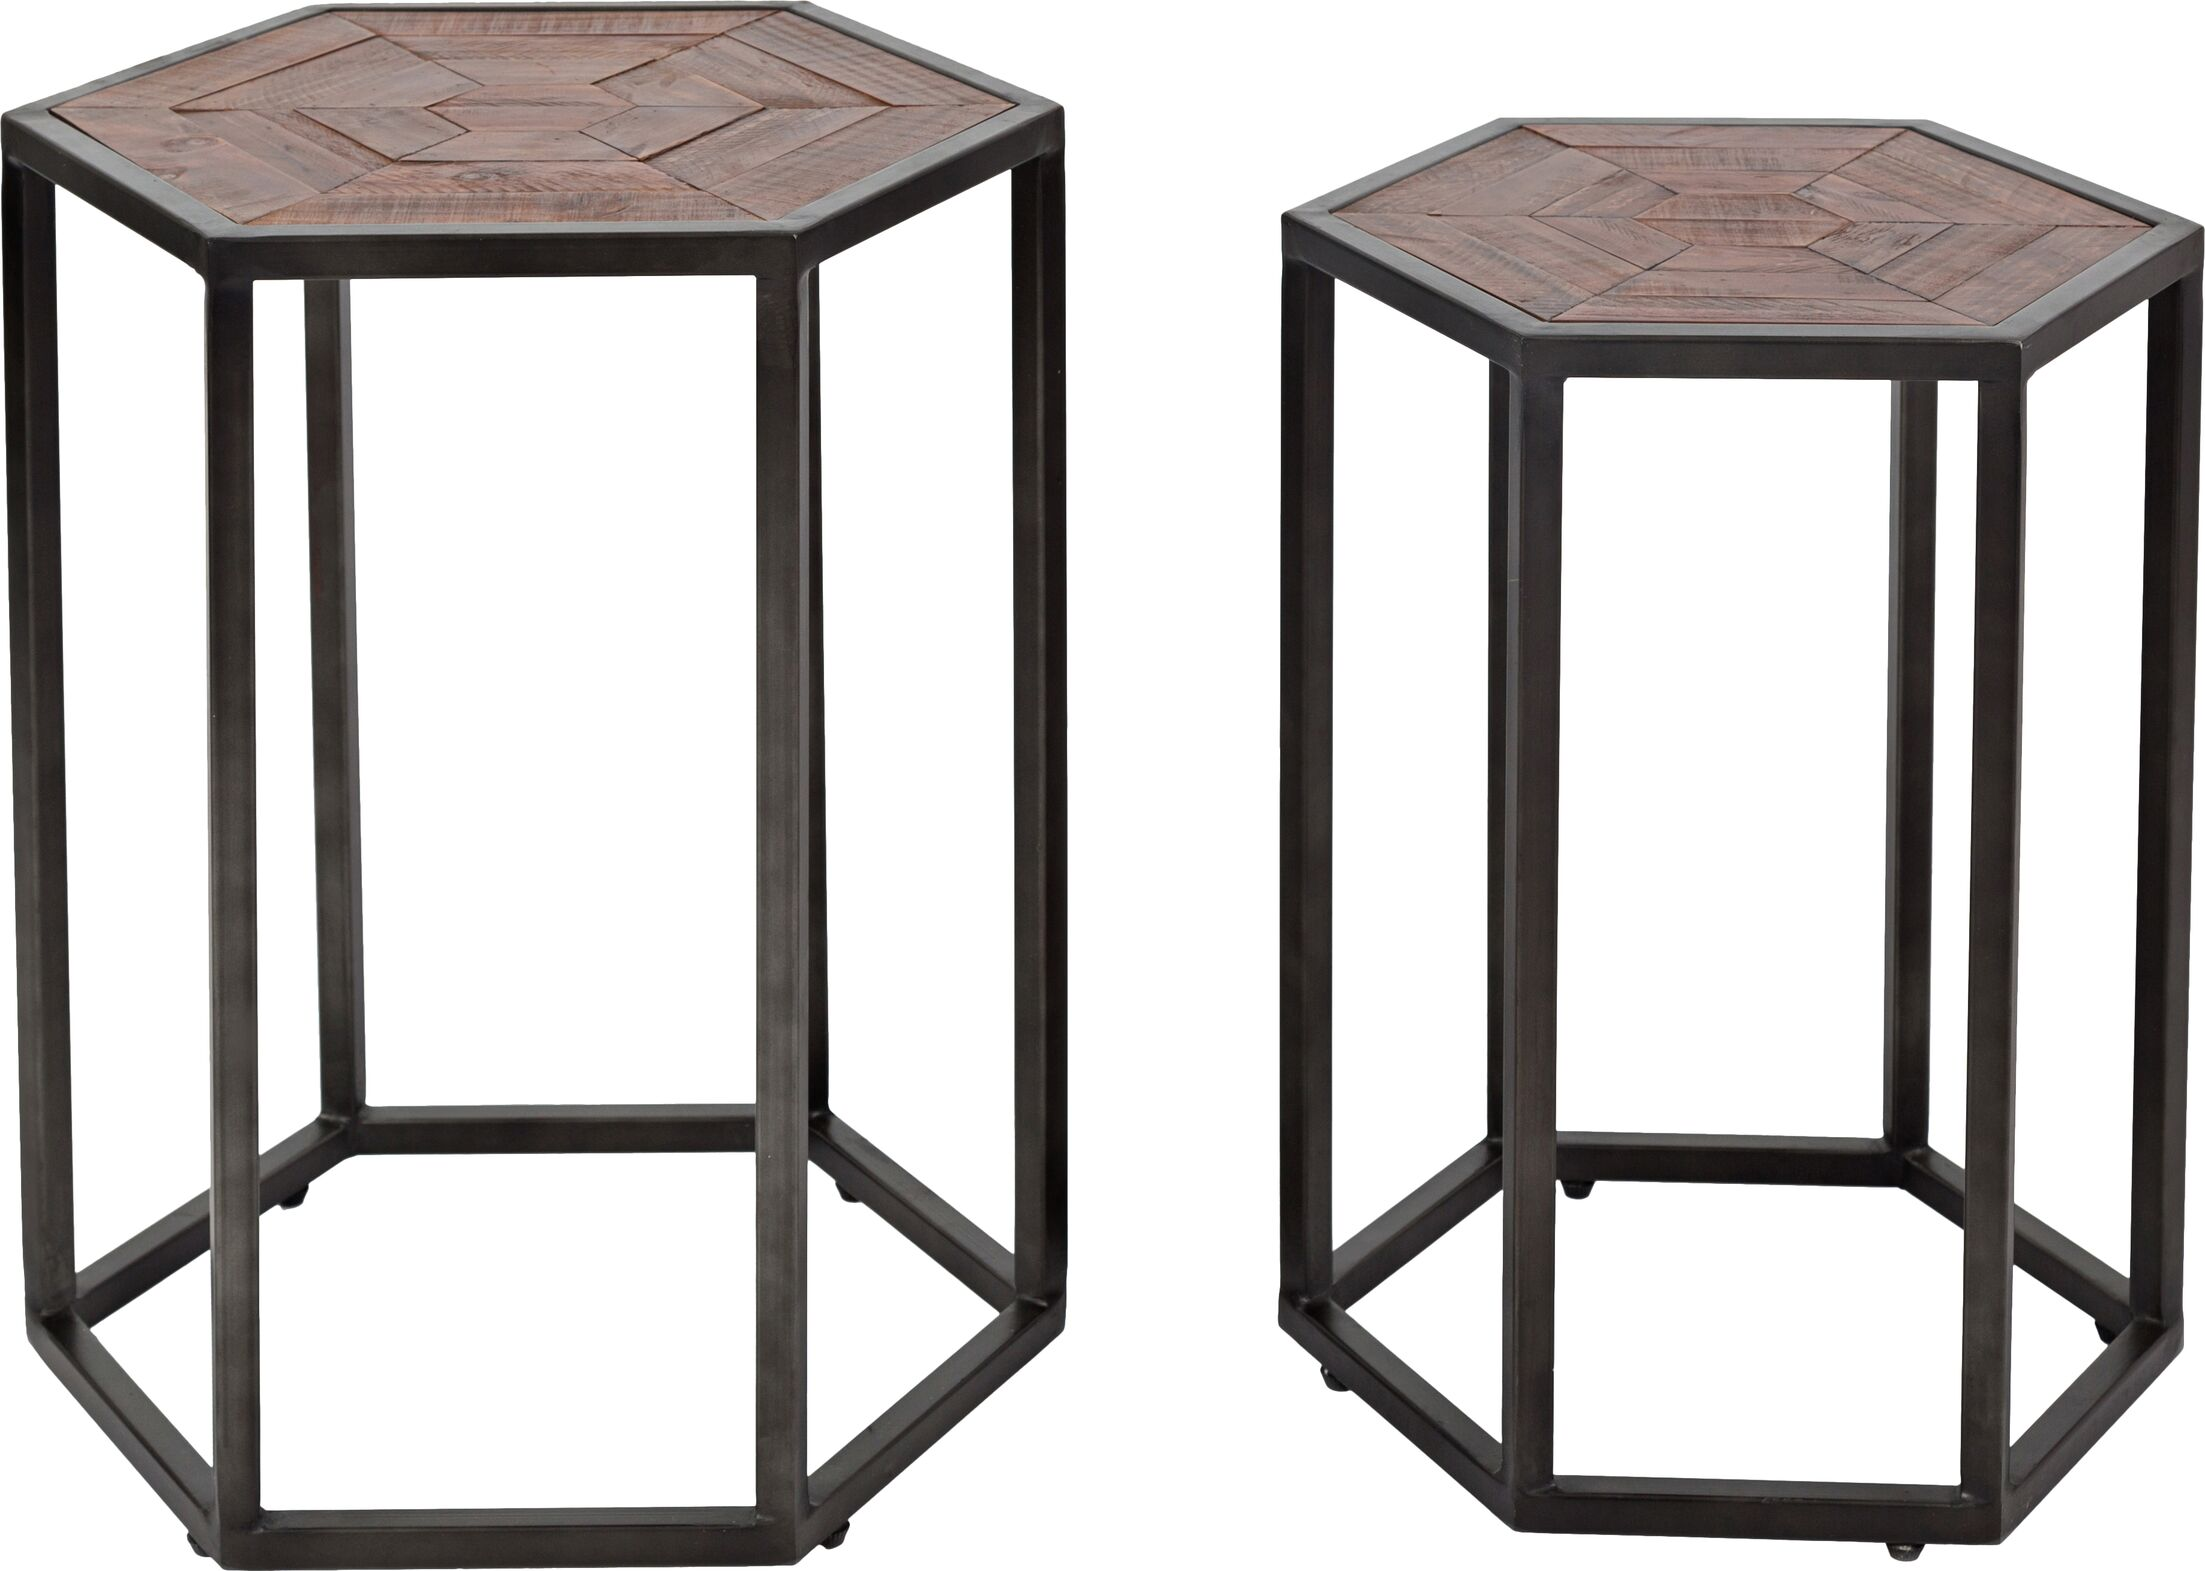 Vsevidof 2 Piece Nesting Tables